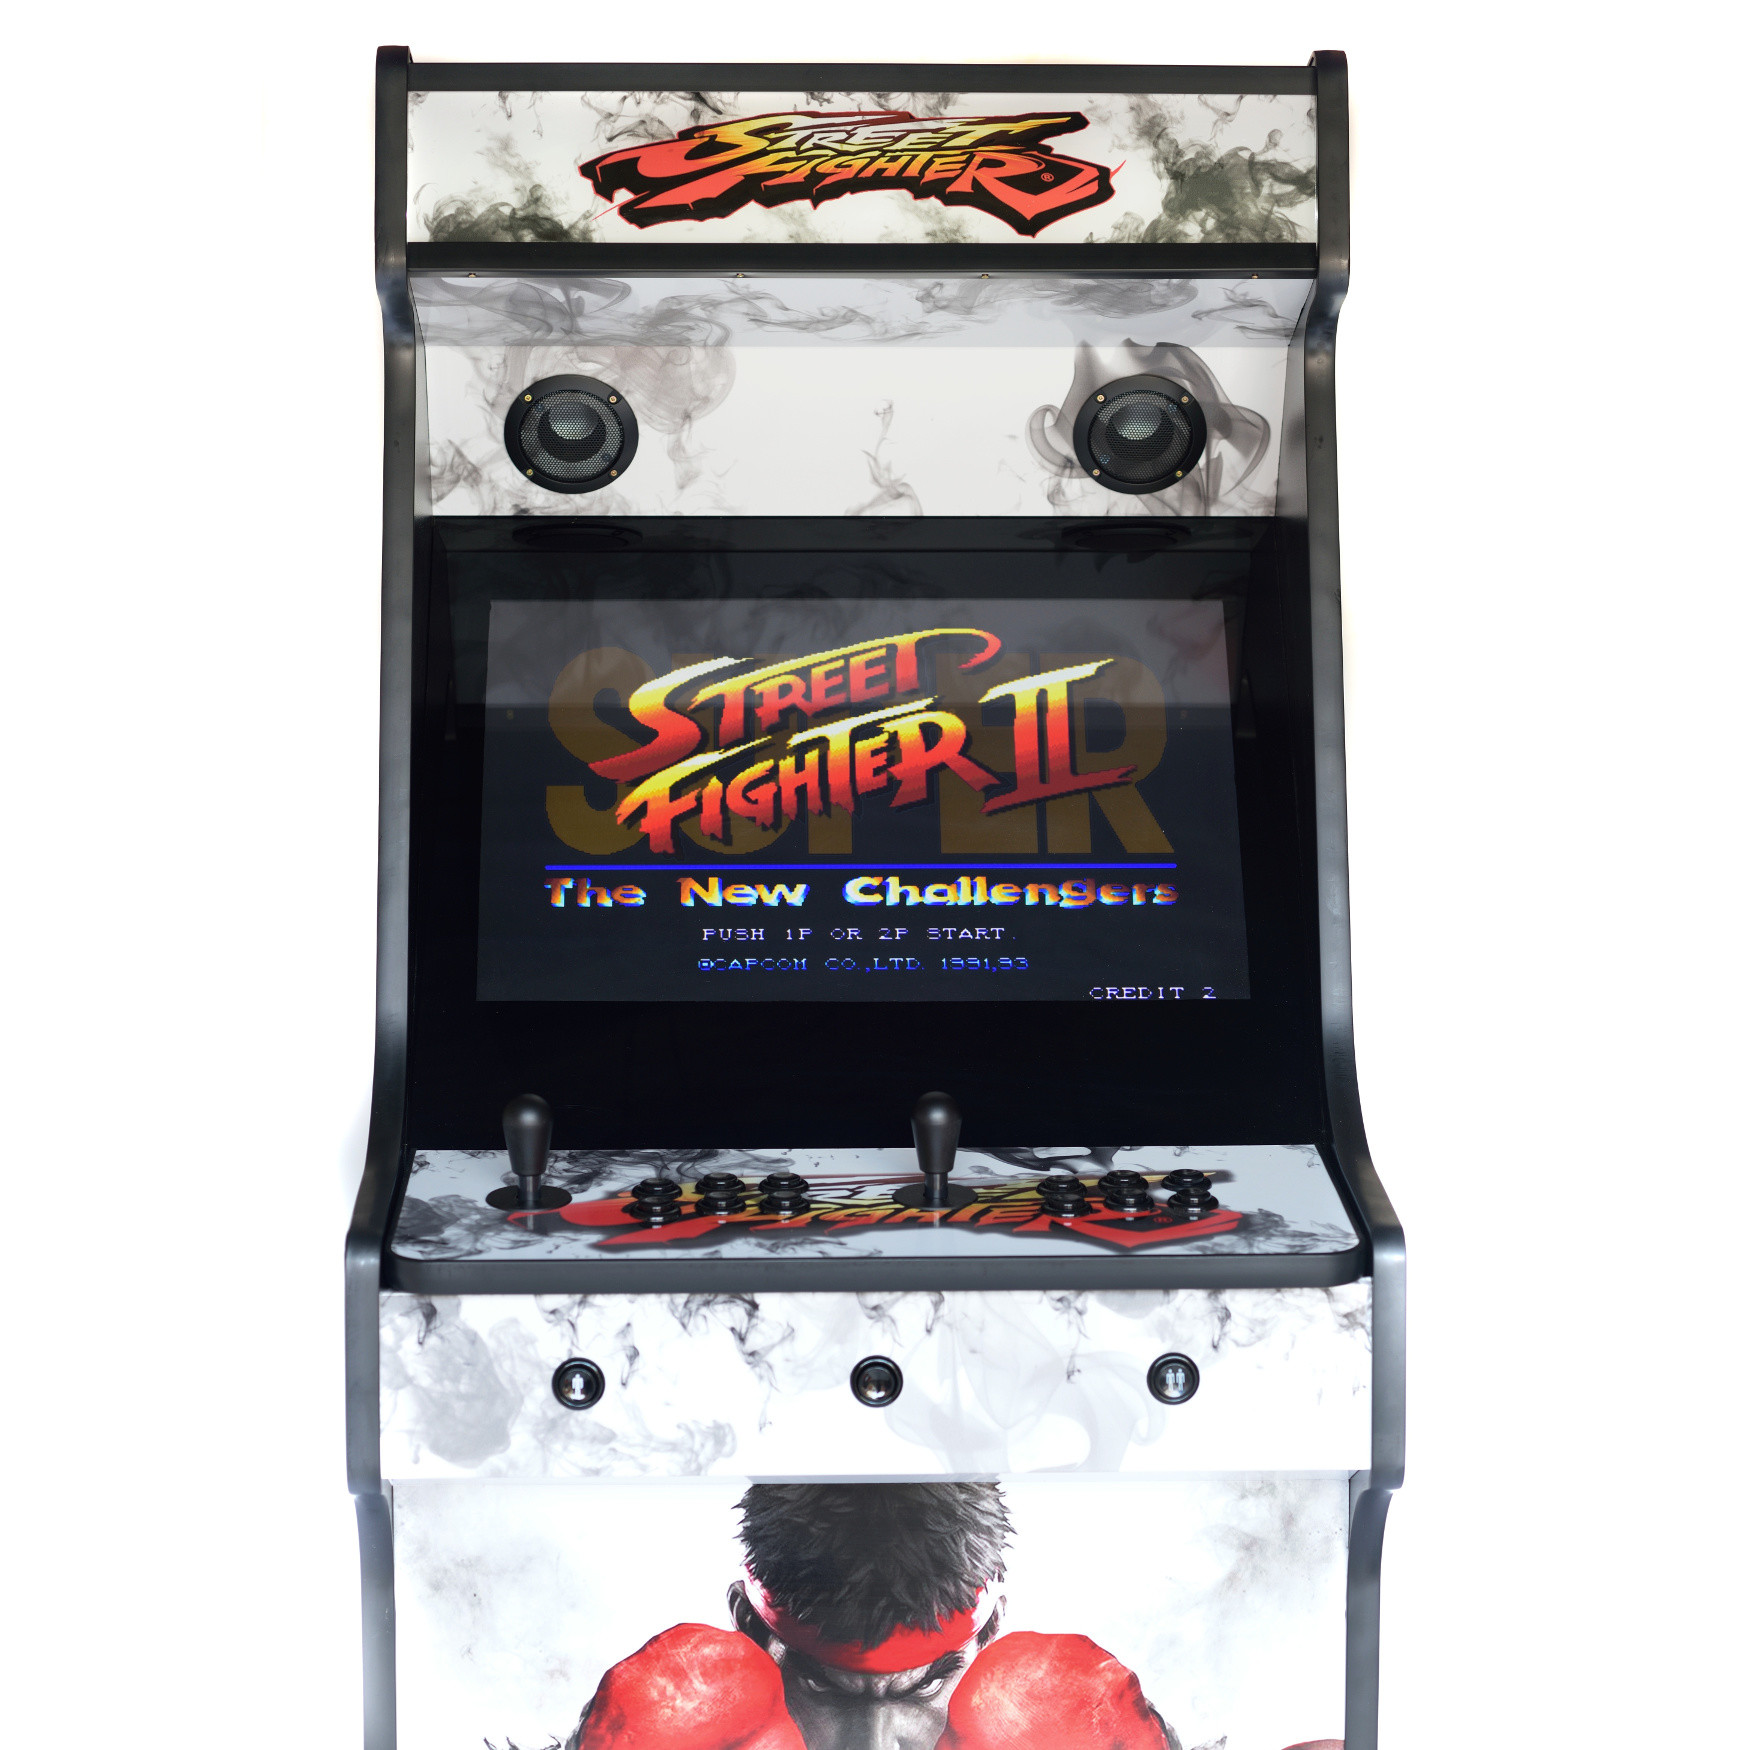 Classic Upright Arcade Machine - Street Fighter 5 Theme - Middle